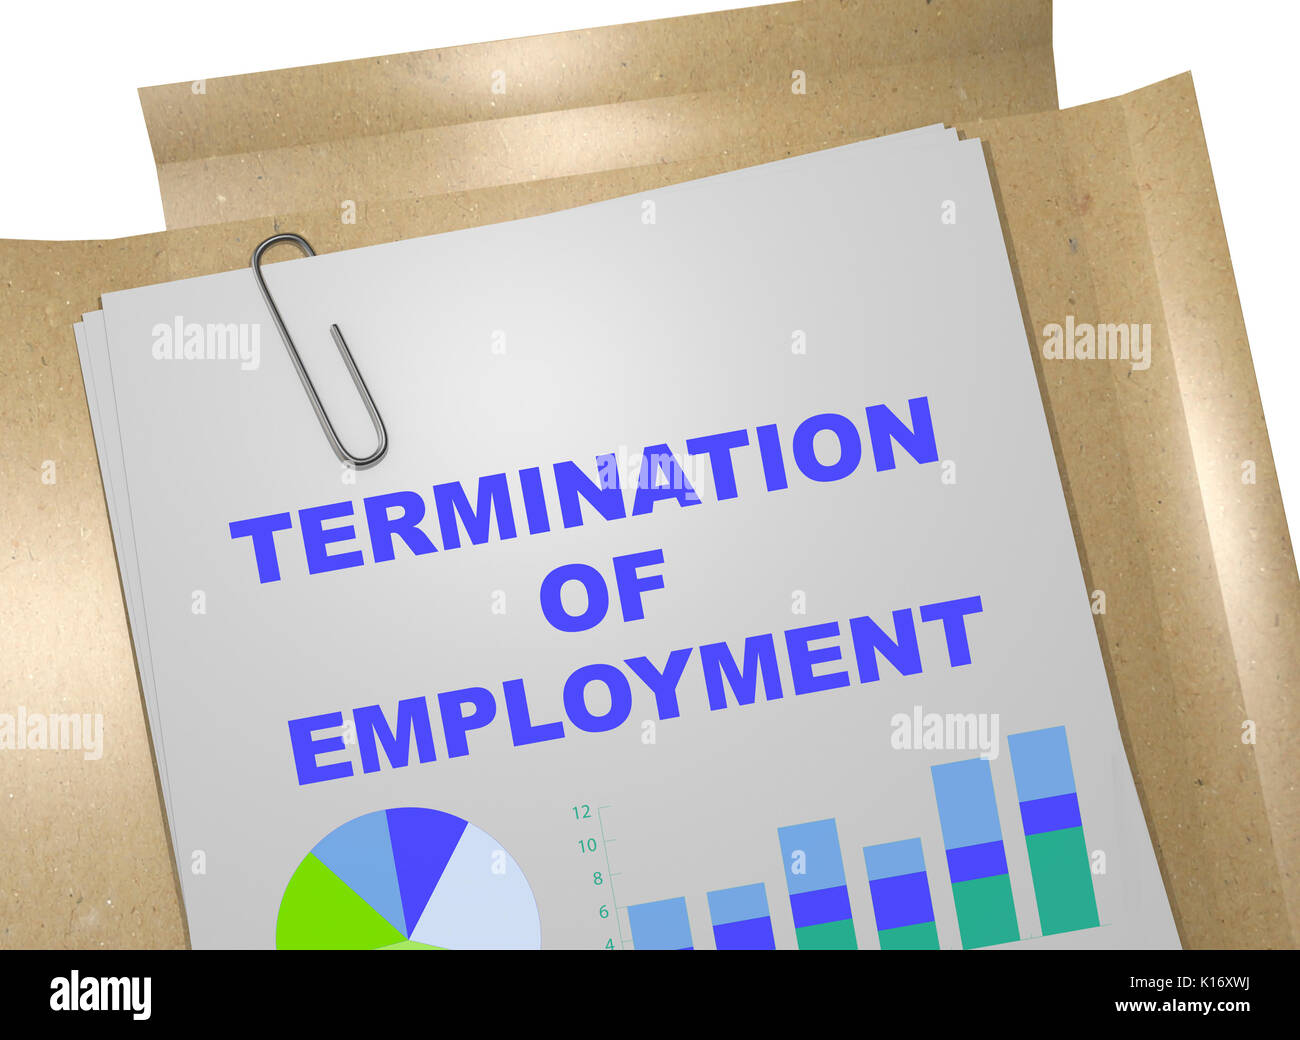 3D illustration of 'TERMINATION OF EMPLOYMENT' title on business document - Stock Image